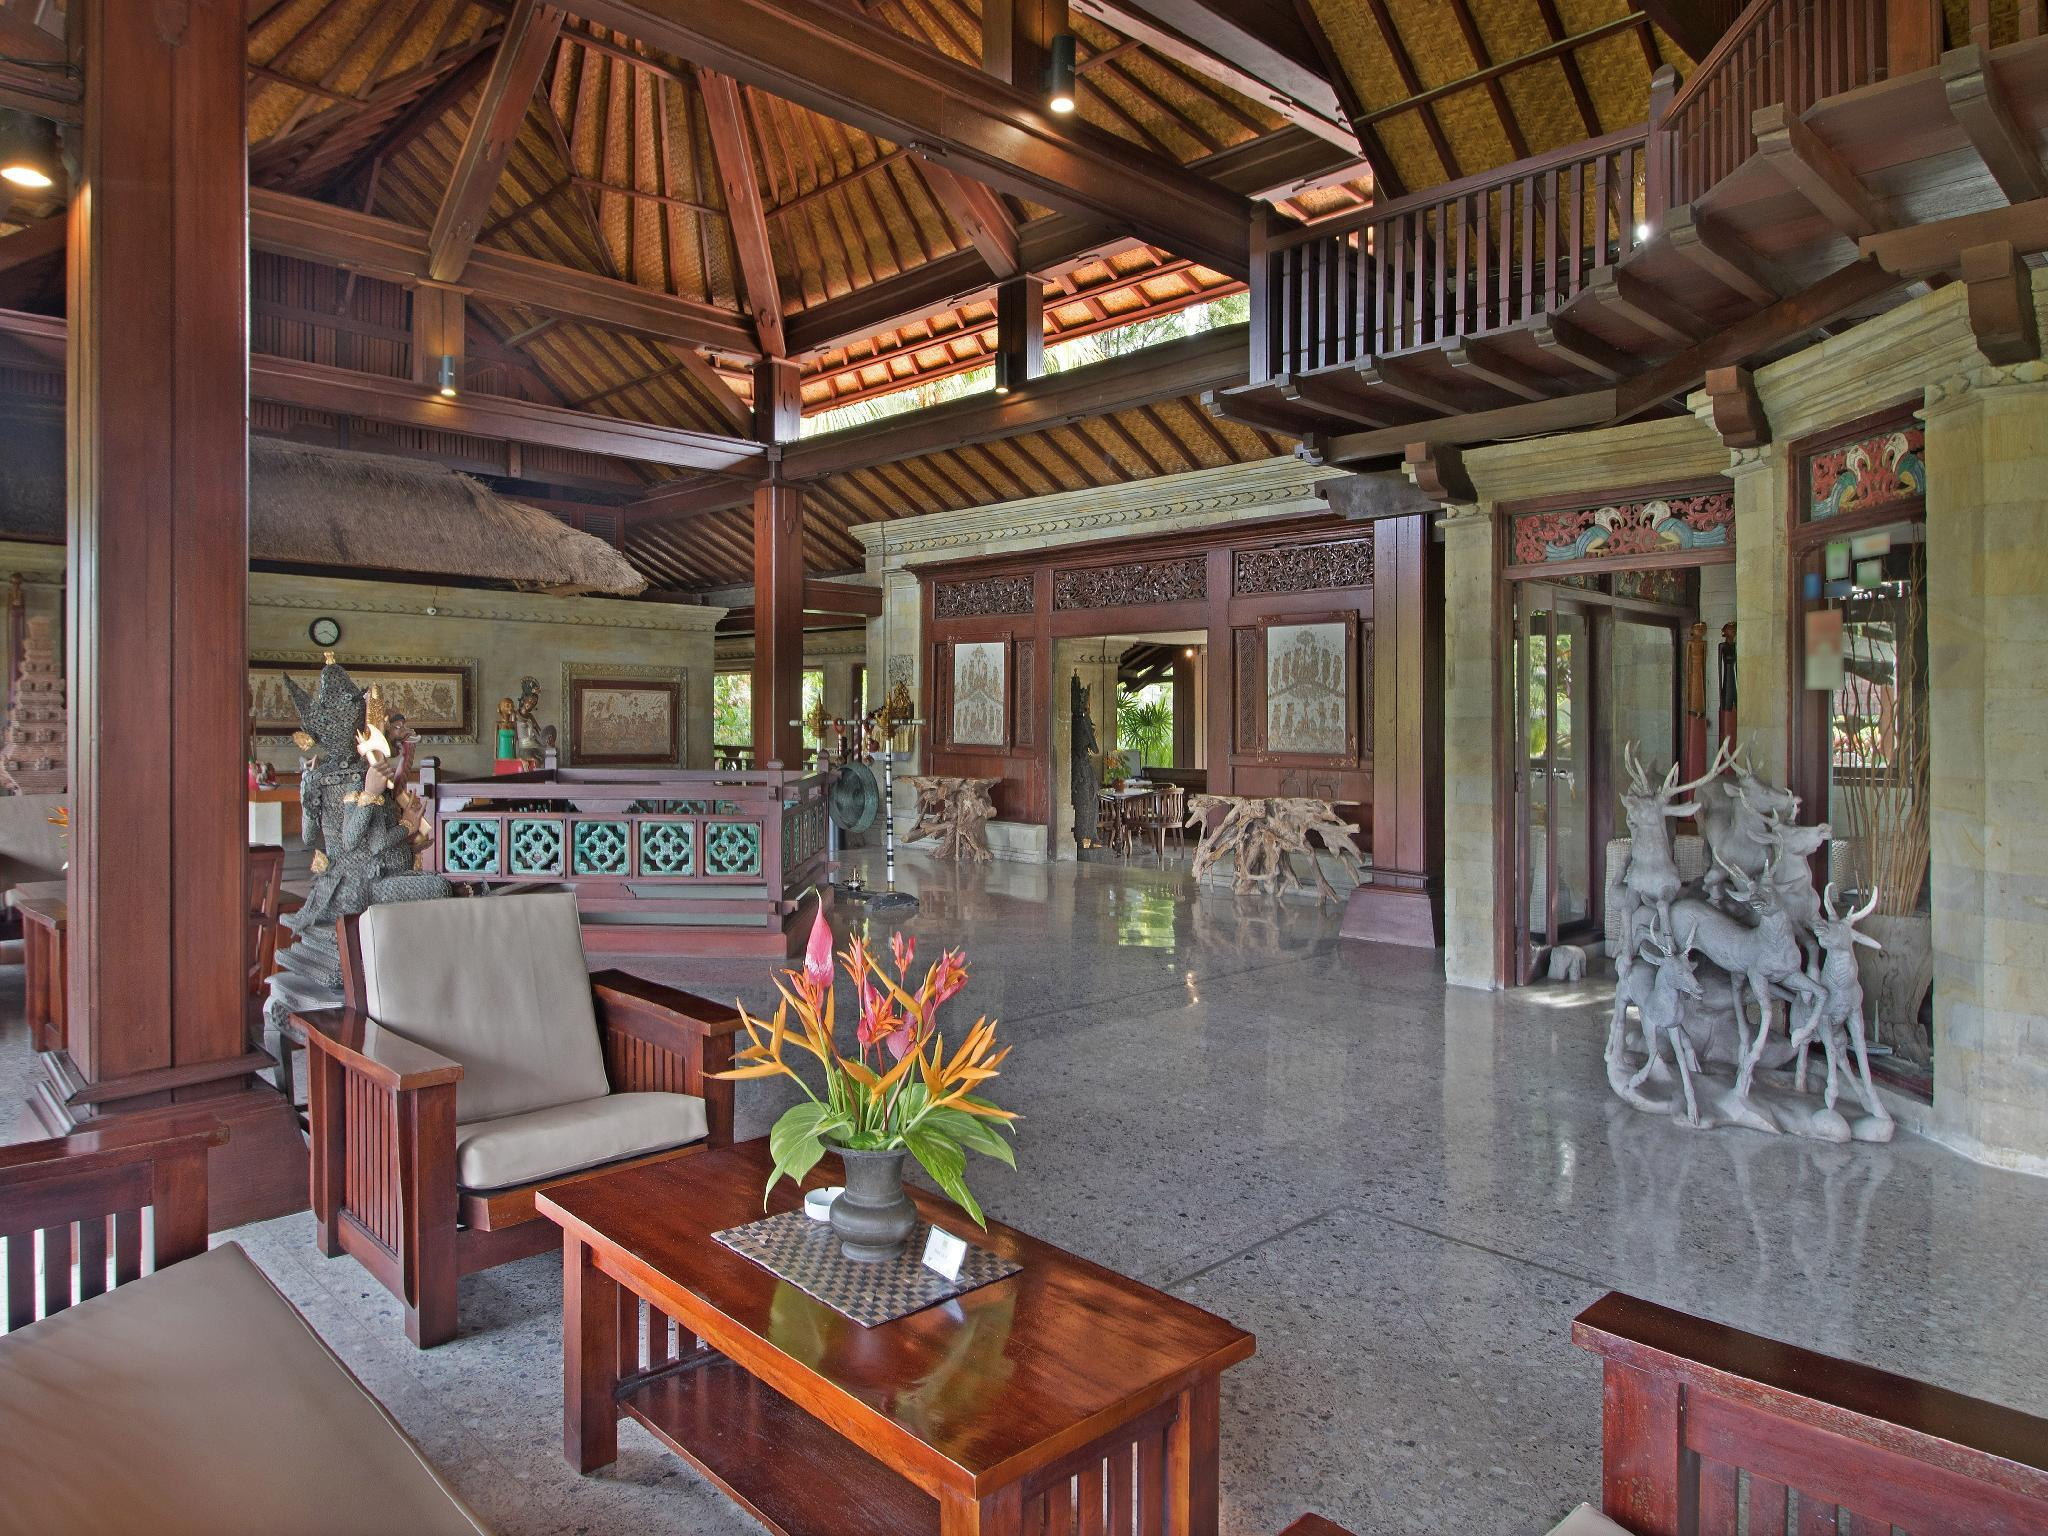 Bali Spirit and Spa